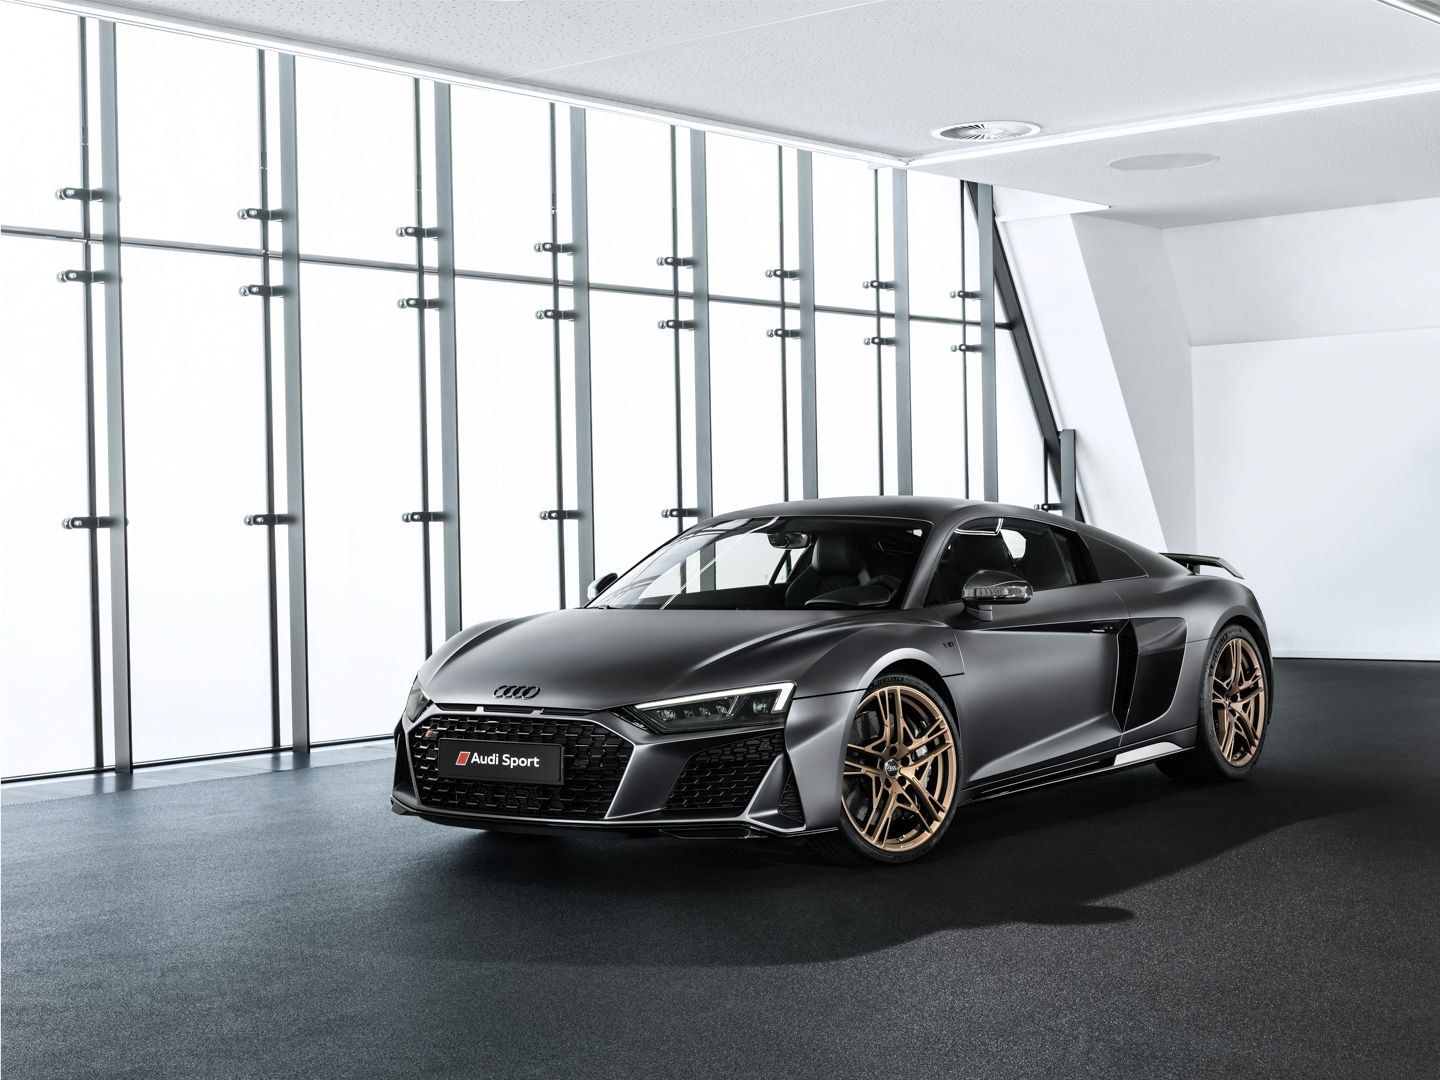 Audi R8 V10 Decennium Pays Tribute To Tens Years Of Its V10 Engine